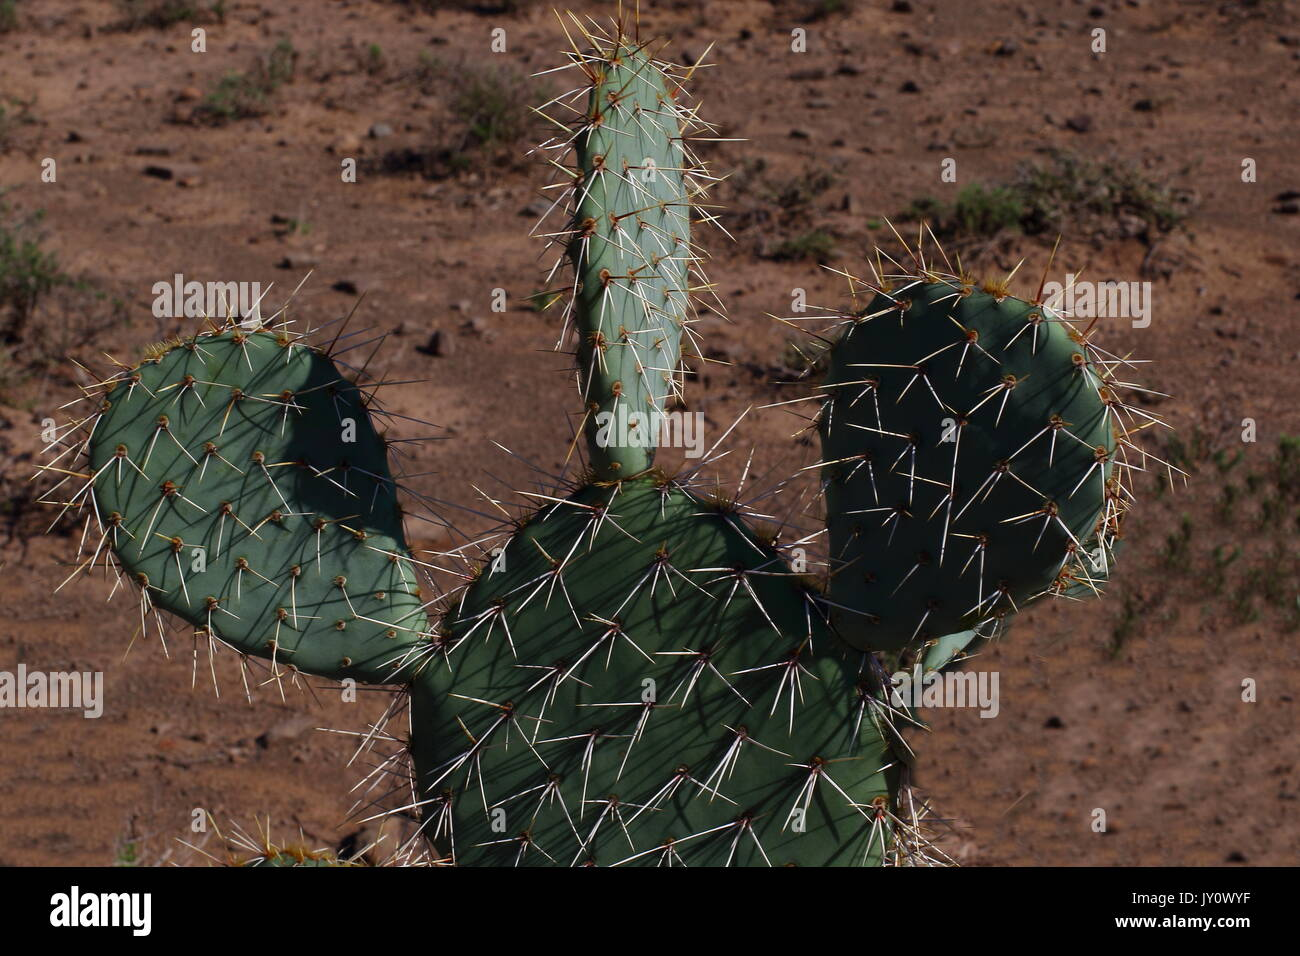 Green cactus bristling with sharp white thorns in landscape format with copy space - Stock Image